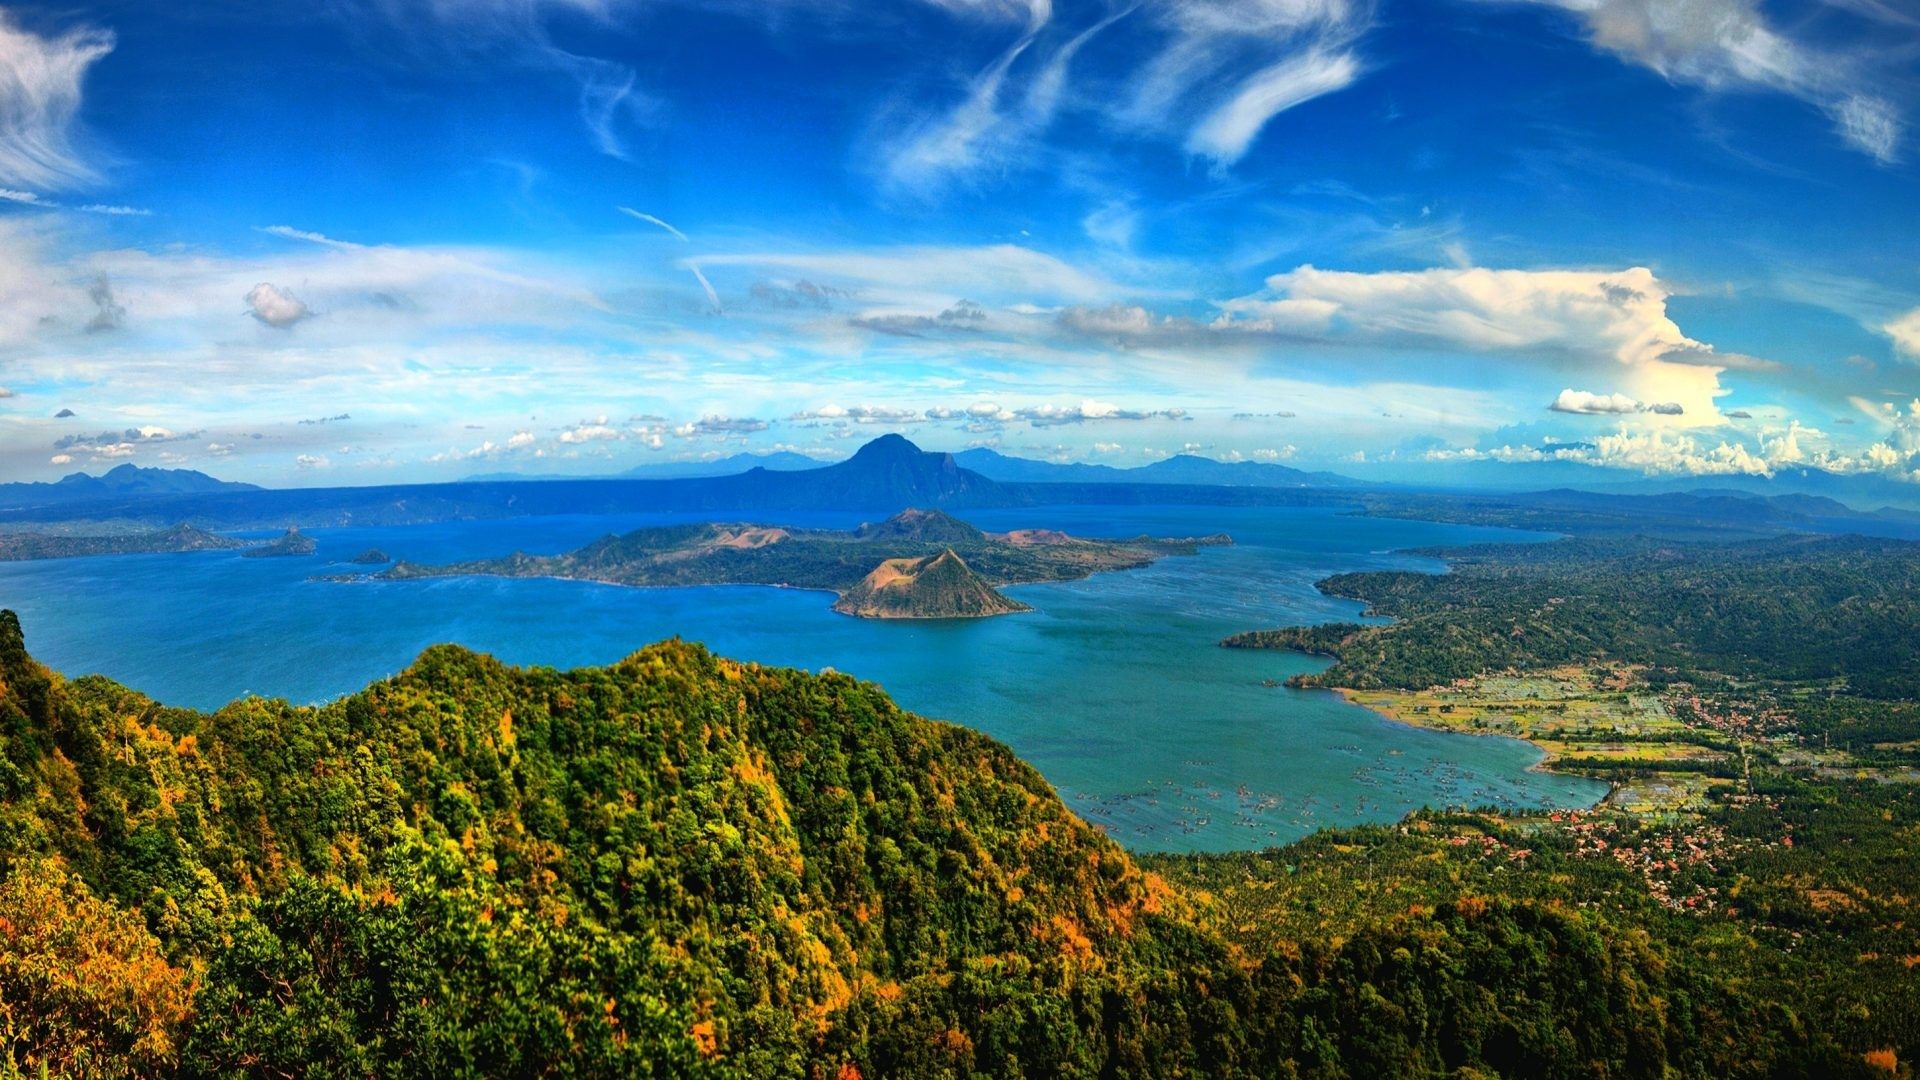 1920x1080 Sky Tag - Beautiful City Taal Volcano Caldera Lake Philippines Panorama  Clouds Sky Mountain Island Crater